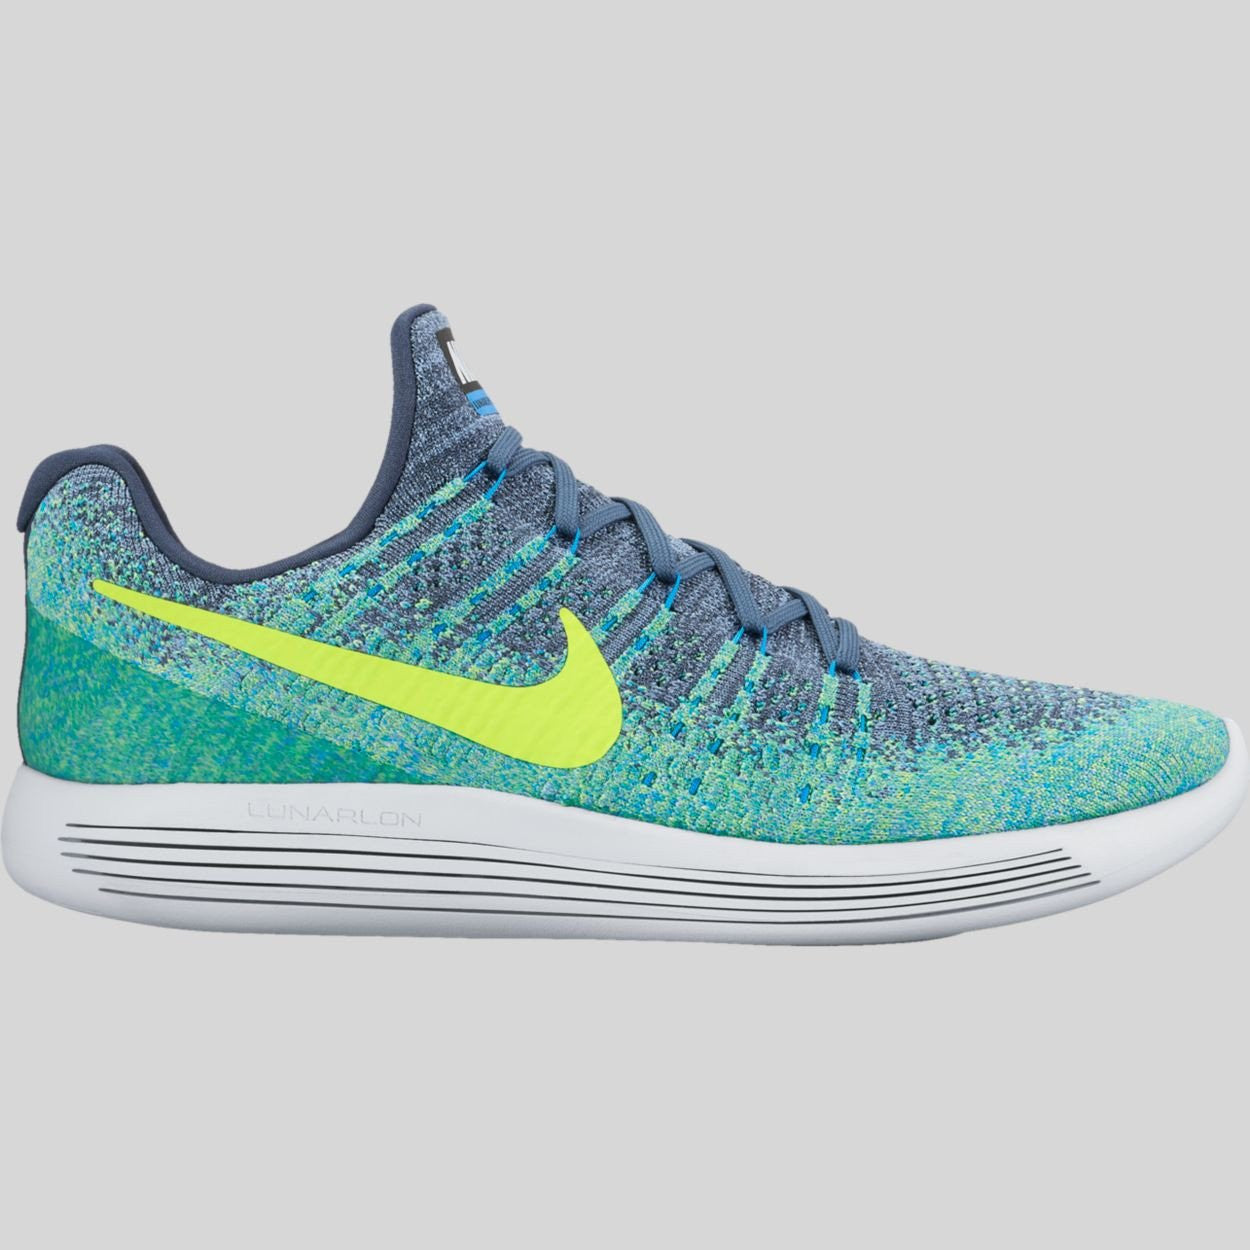 reputable site 5cfe5 12d8e Nike Lunarepic Low Flyknit 2 Thunder Blue Volt Work Blue (863779-405)